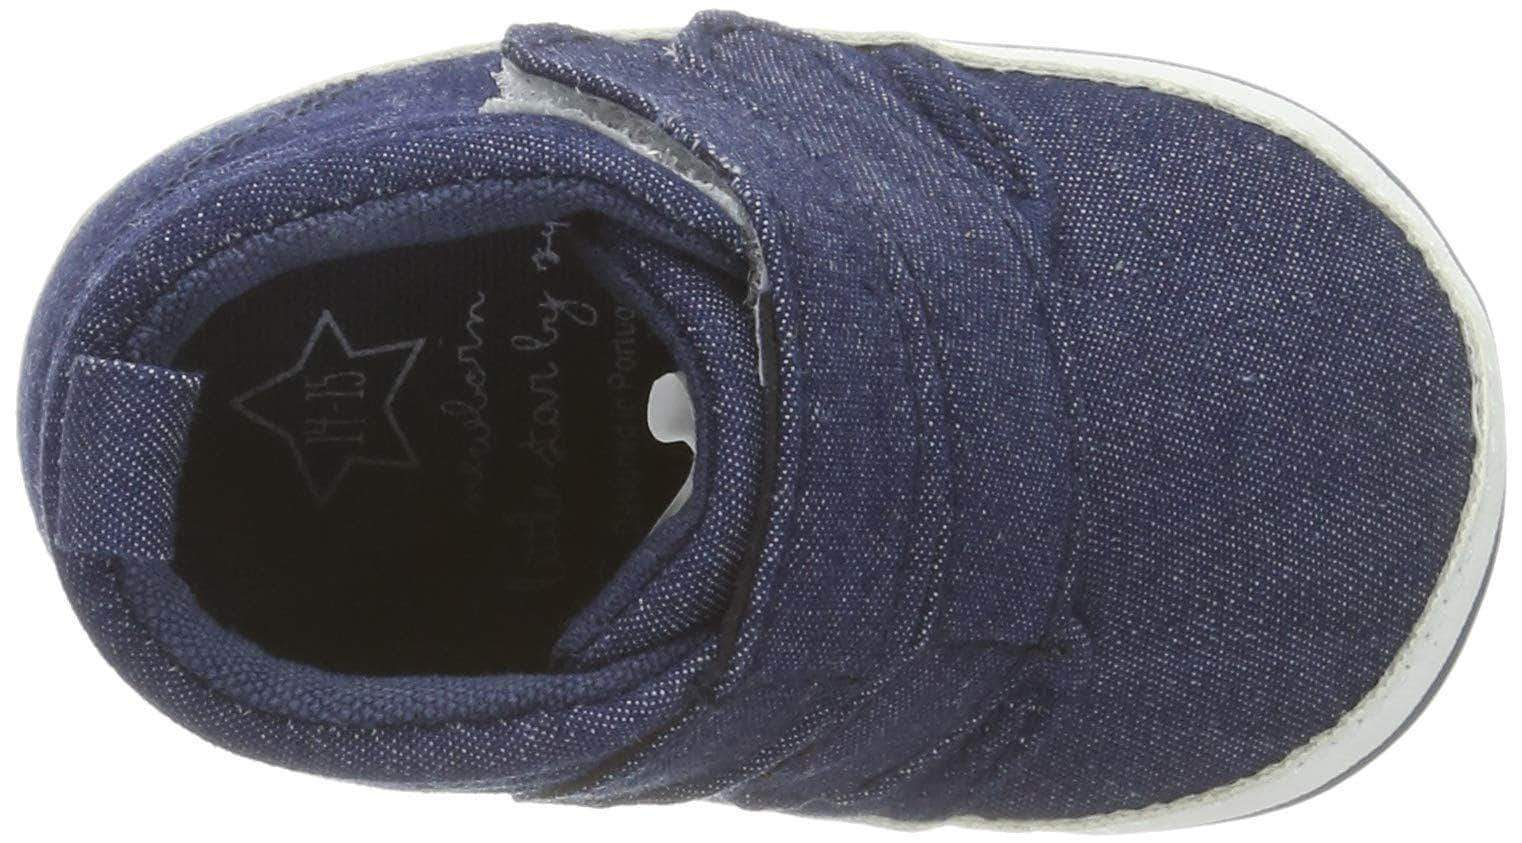 Amazon Zippy Zapatillas Bebé Cano Alto, Zapatos Bebés, Azul (Chambray Blue 15-4030 TC 3164), 16/17 EU